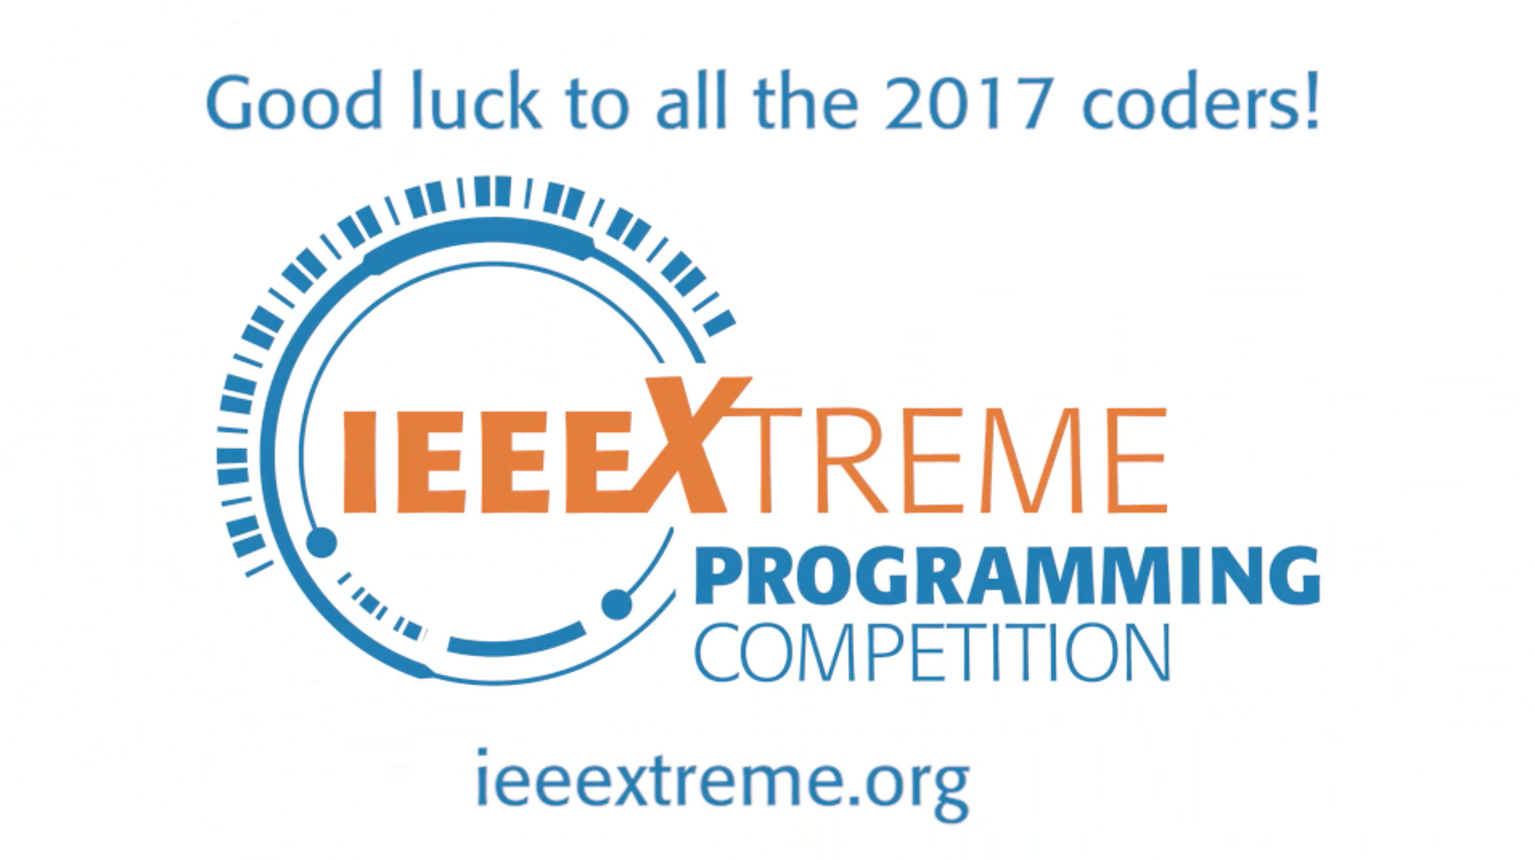 Women Coders Wanted for IEEE Xtreme!